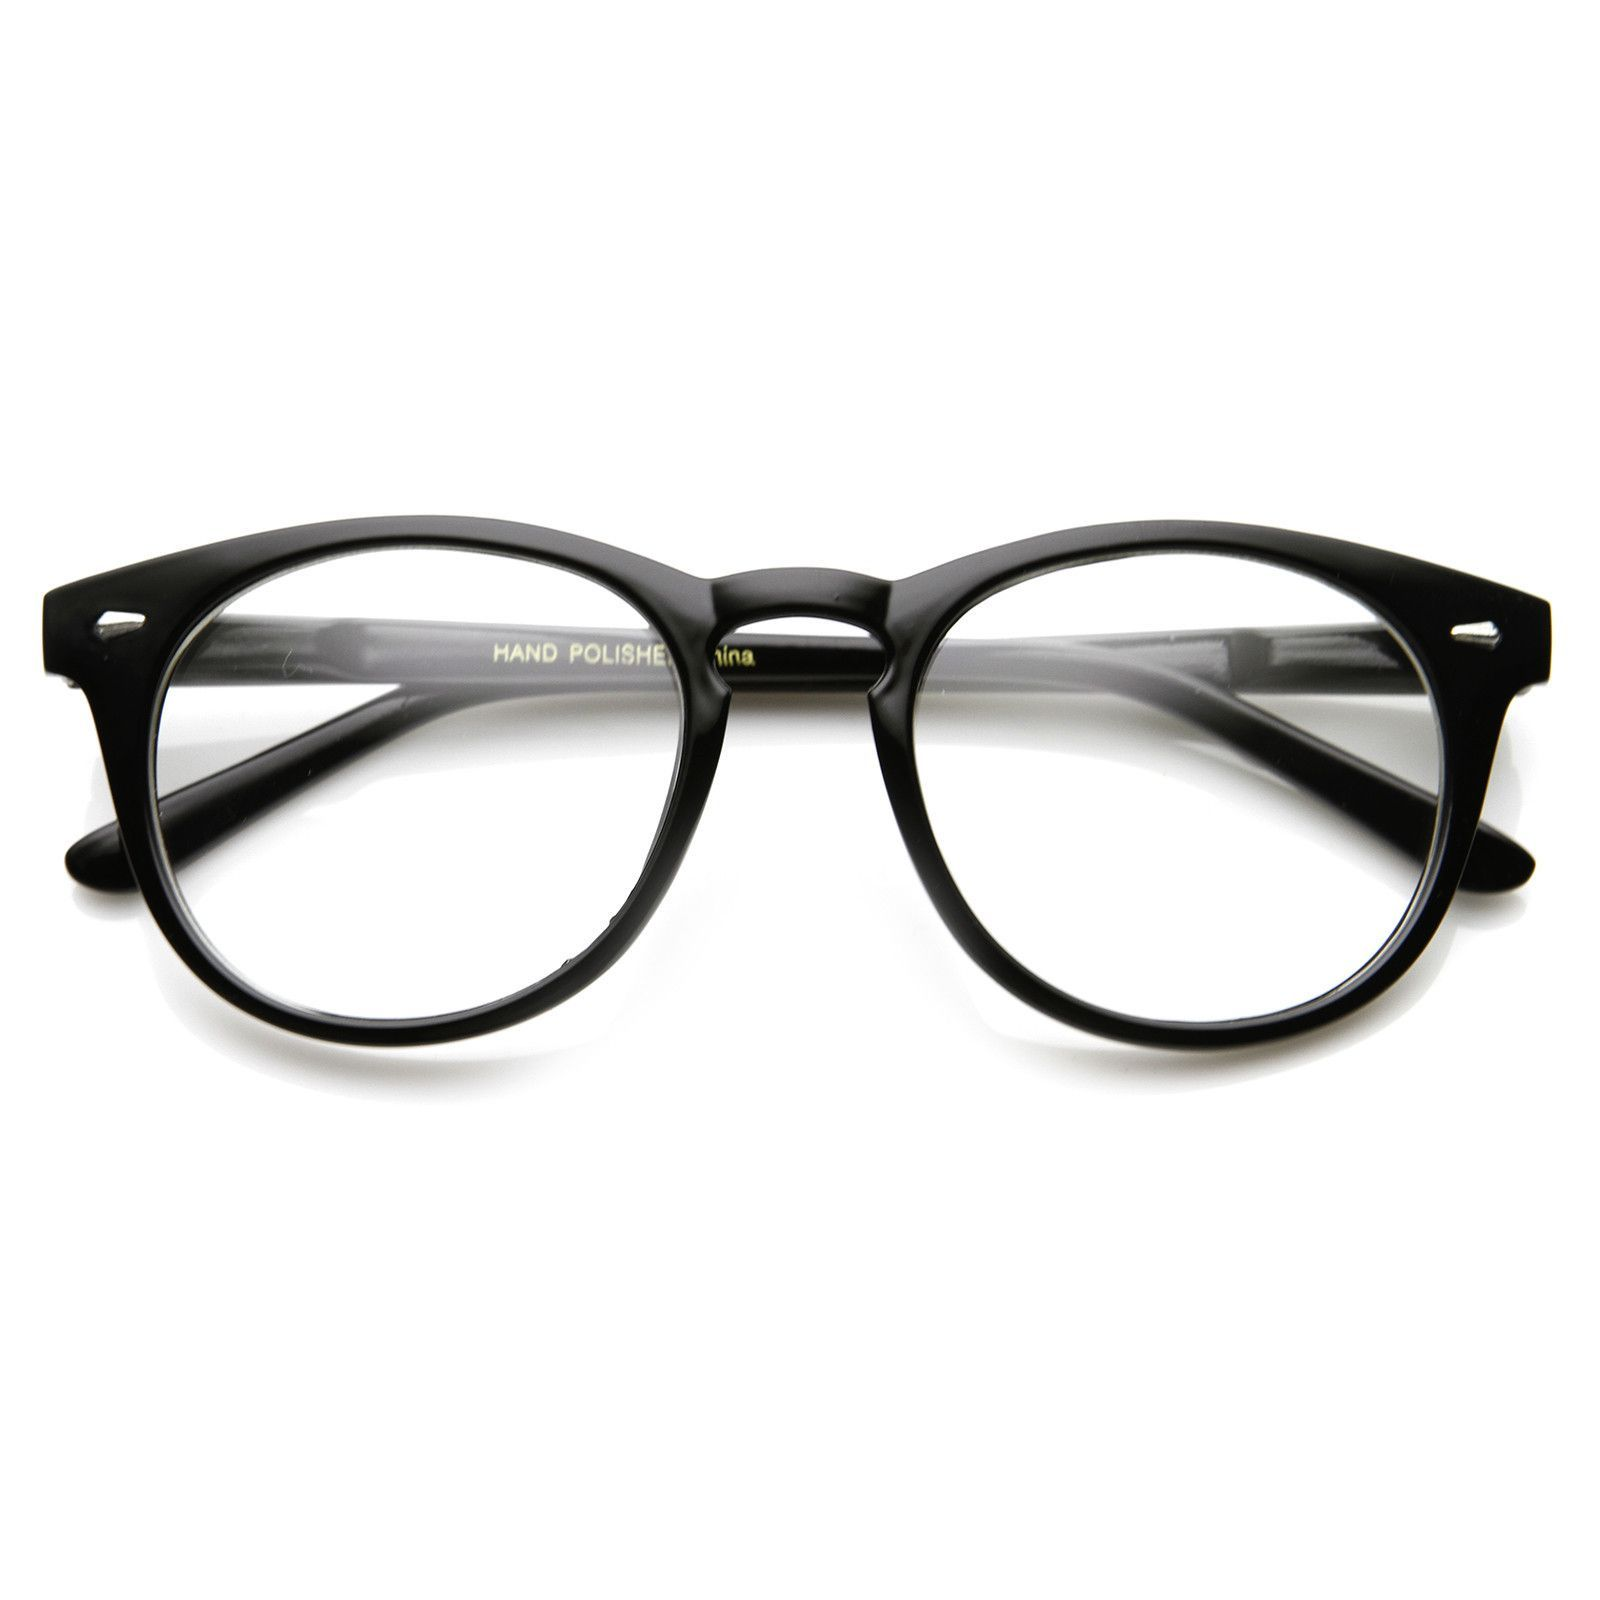 Eyeglasses cost - Classic Vintage Era Round P3 Clear Lens Optical Glasses 8712